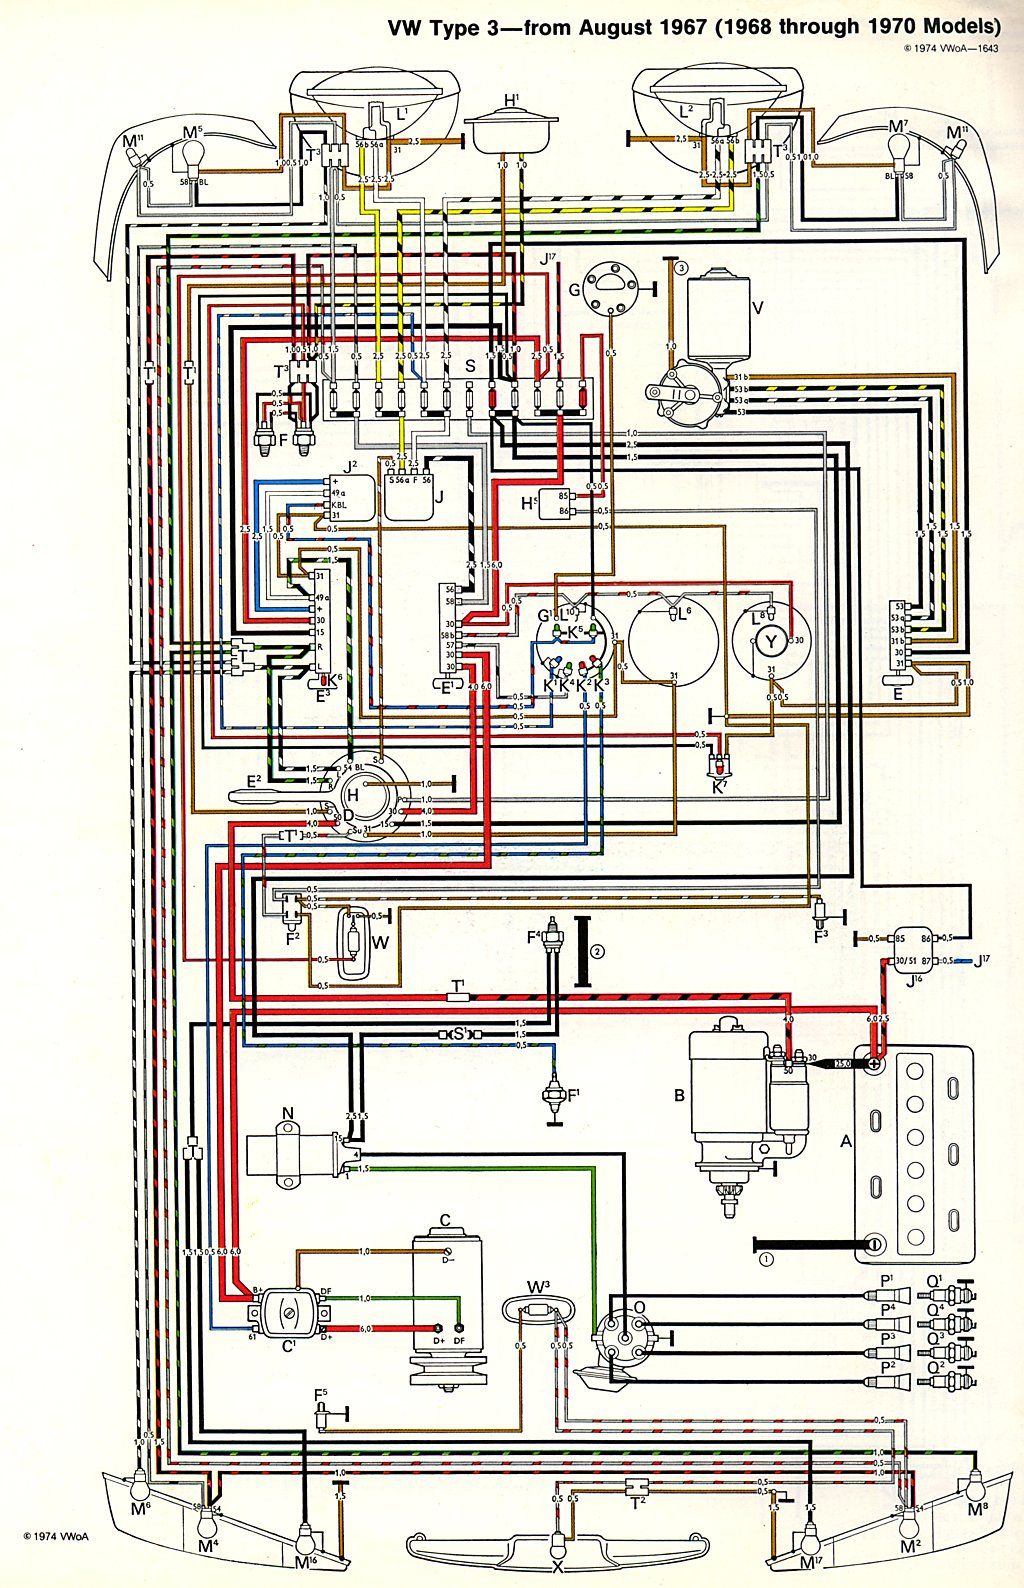 Wiring Diagram 69 Vw Squareback - Custom Wiring Diagram • on engine schematics, plumbing schematics, transmission schematics, transformer schematics, amplifier schematics, wire schematics, ford diagrams schematics, circuit schematics, electronics schematics, ignition schematics, generator schematics, piping schematics, ecu schematics, ductwork schematics, motor schematics, computer schematics, electrical schematics, tube amp schematics, engineering schematics, design schematics,